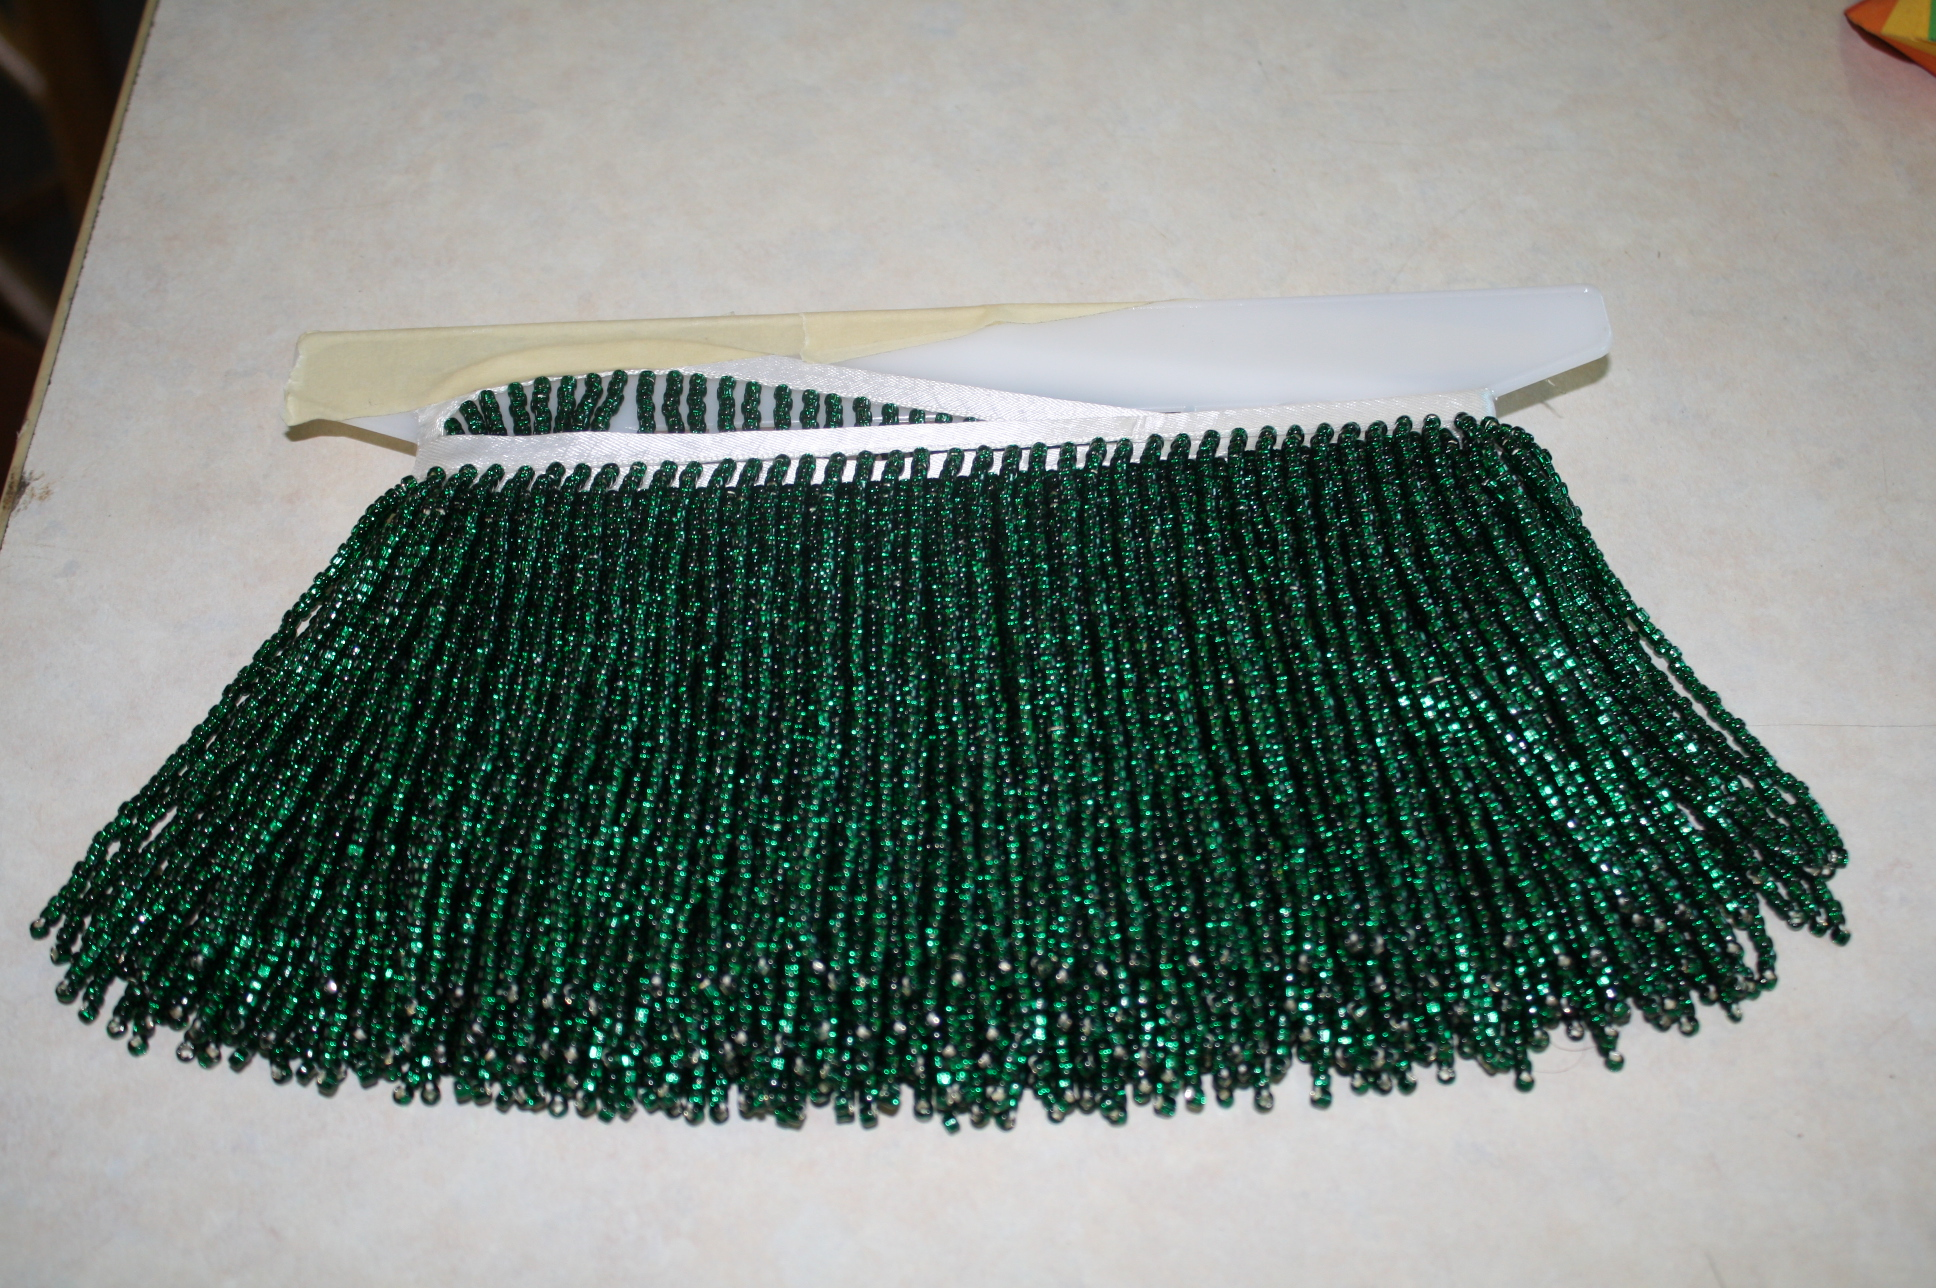 71 italian hand made glass bead lamp shade fringe for sale 71 italian hand made glass bead lamp shade fringe for sale antiques classifieds mozeypictures Choice Image